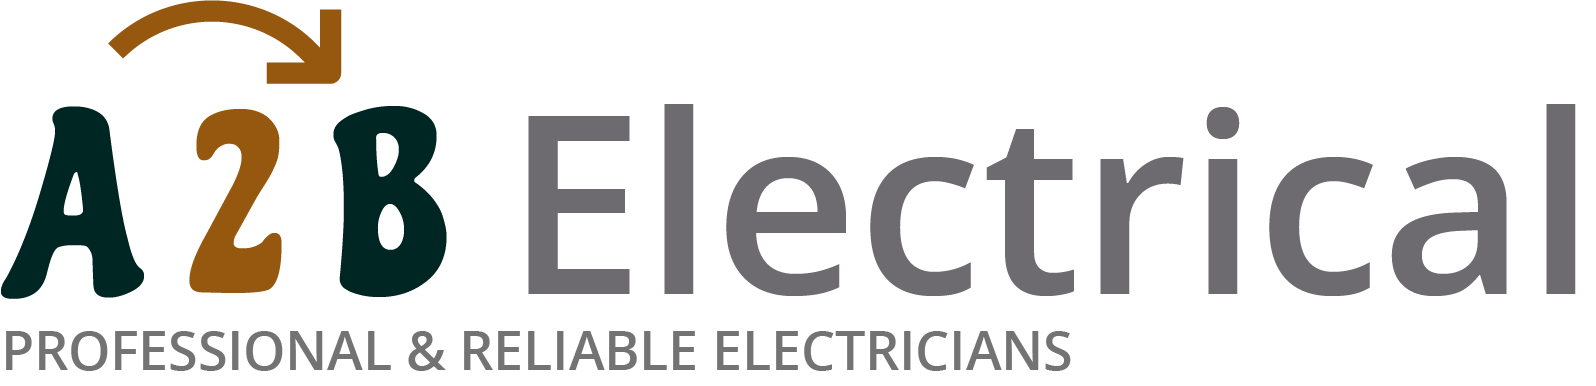 If you have electrical wiring problems in Barnes, we can provide an electrician to have a look for you.